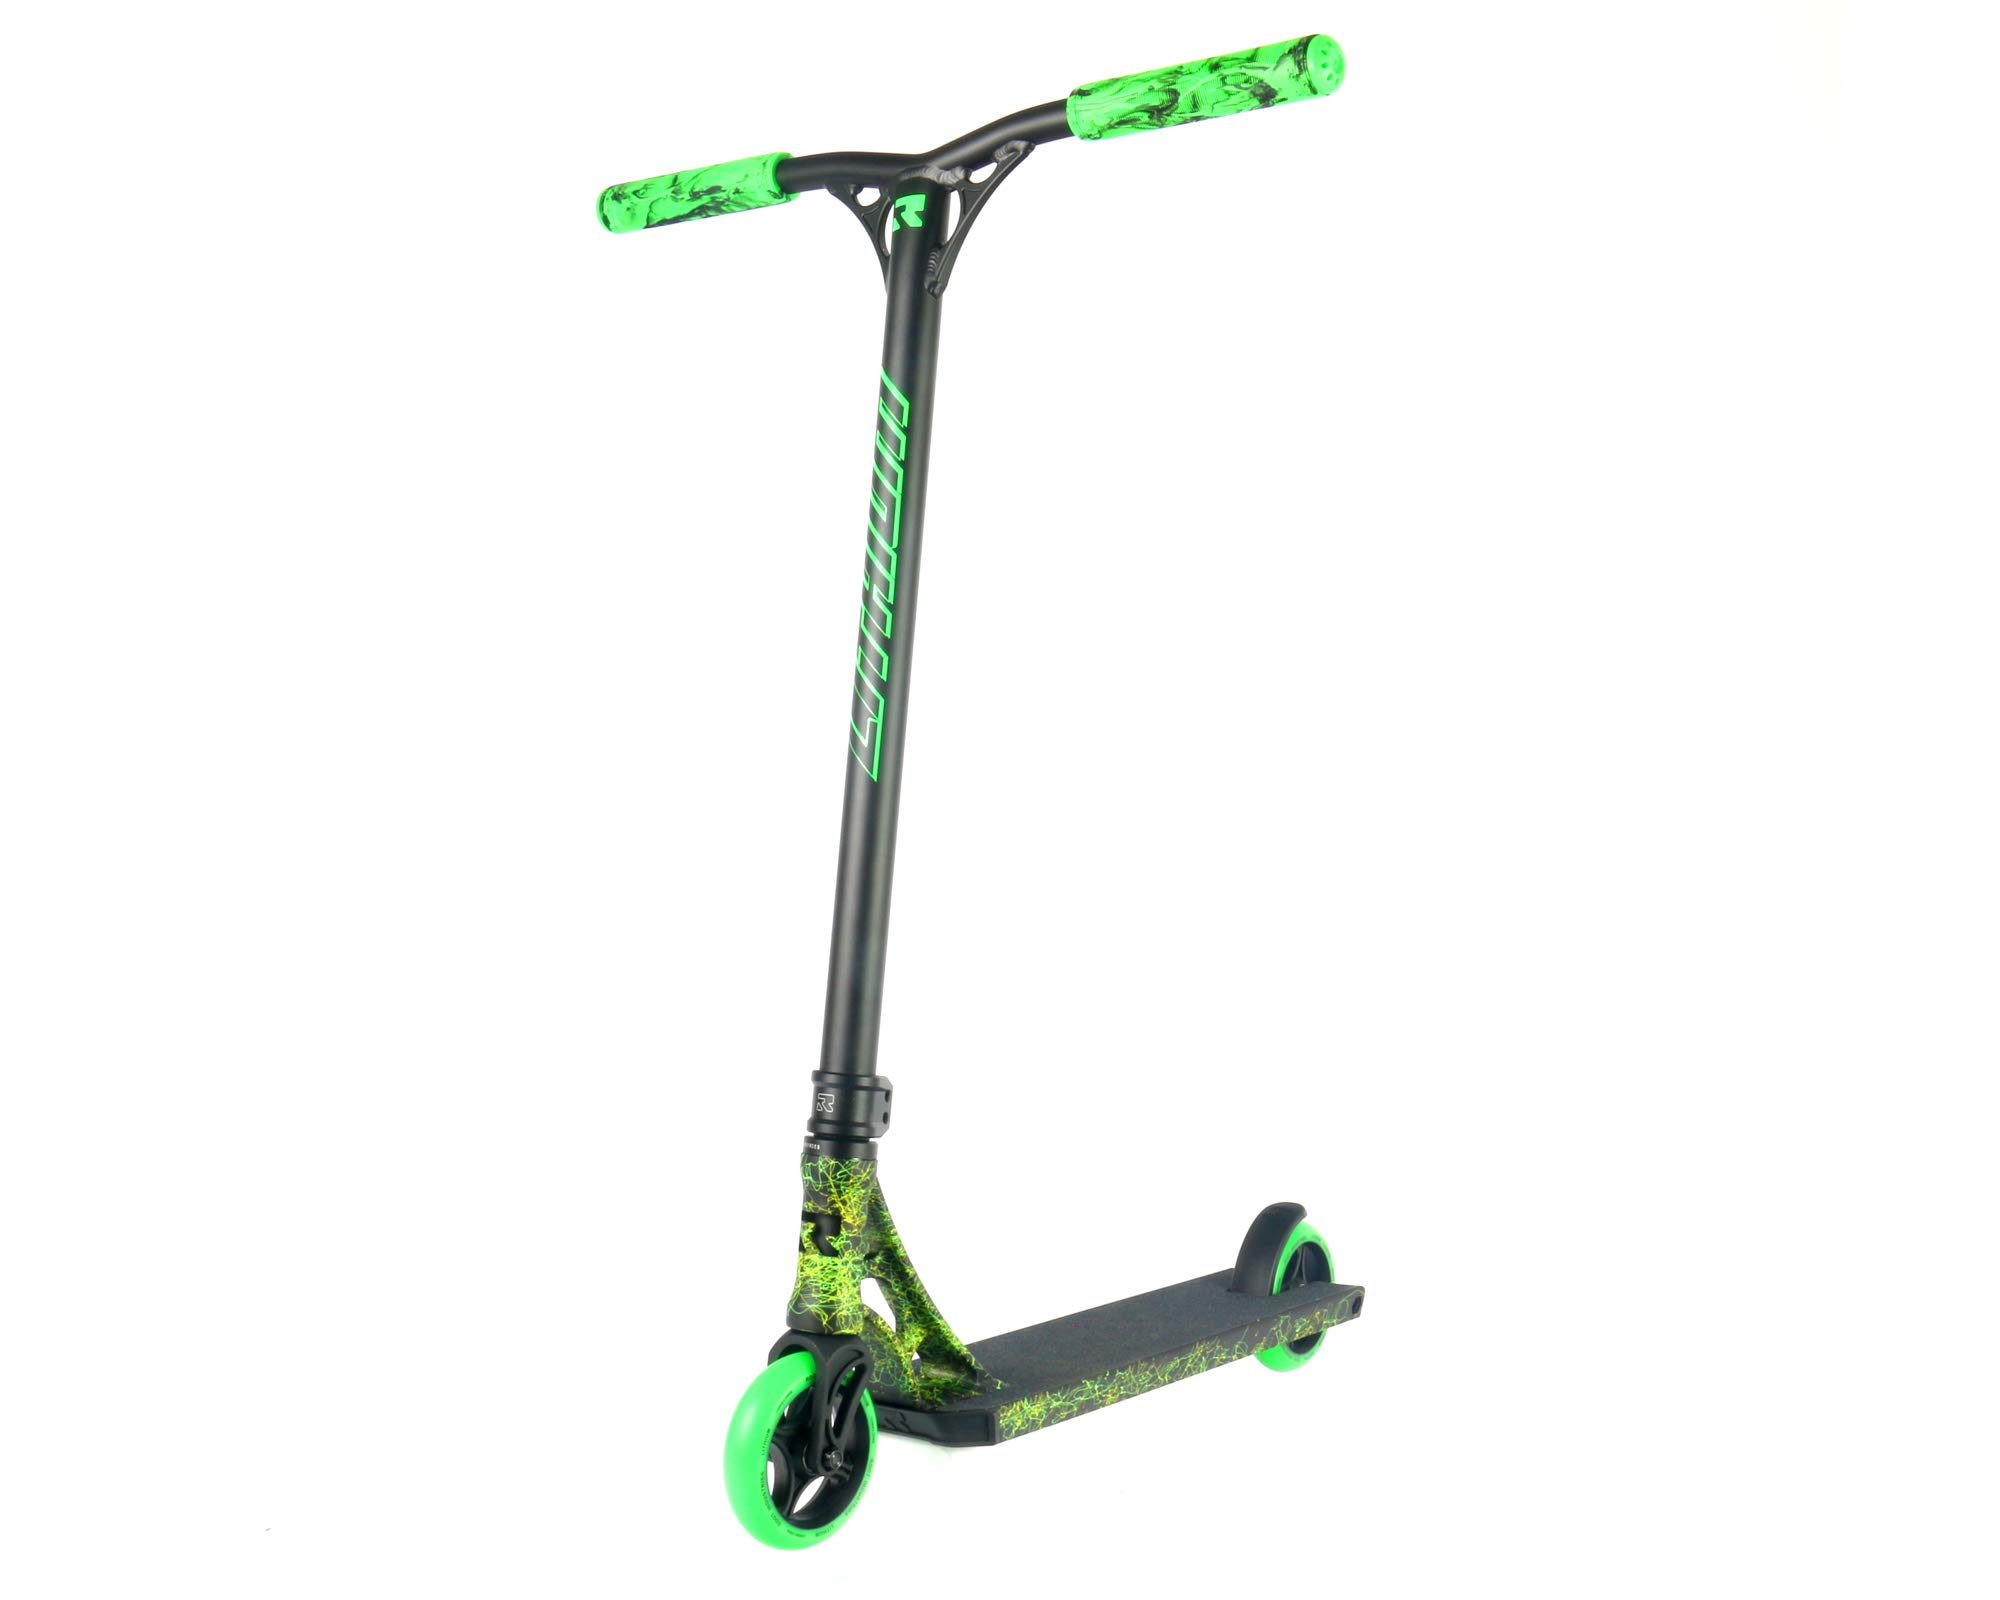 Root Industries Lithium Complete Scooter - Trick/Stunt Kick Scooter - Perfect for Beginner and Advanced Freestyle Scooter Riders - Perfect for Kids Ages 8 and Older - Premium Parts (Blk/Grn/YLW)